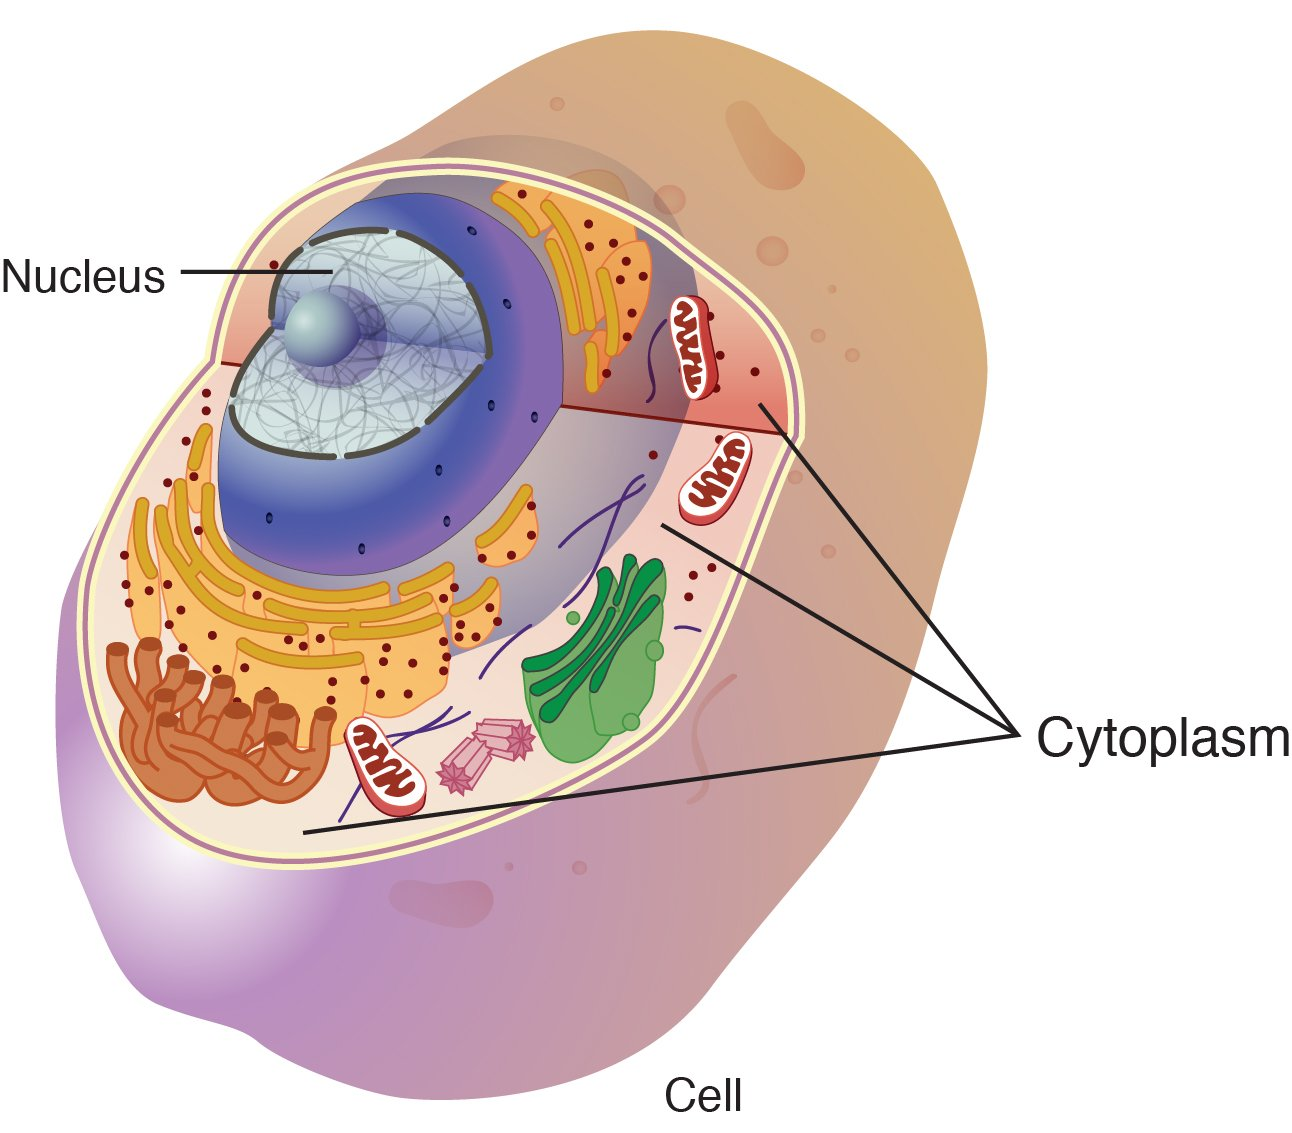 Cytoplasm - National Library of Medicine - PubMed Health